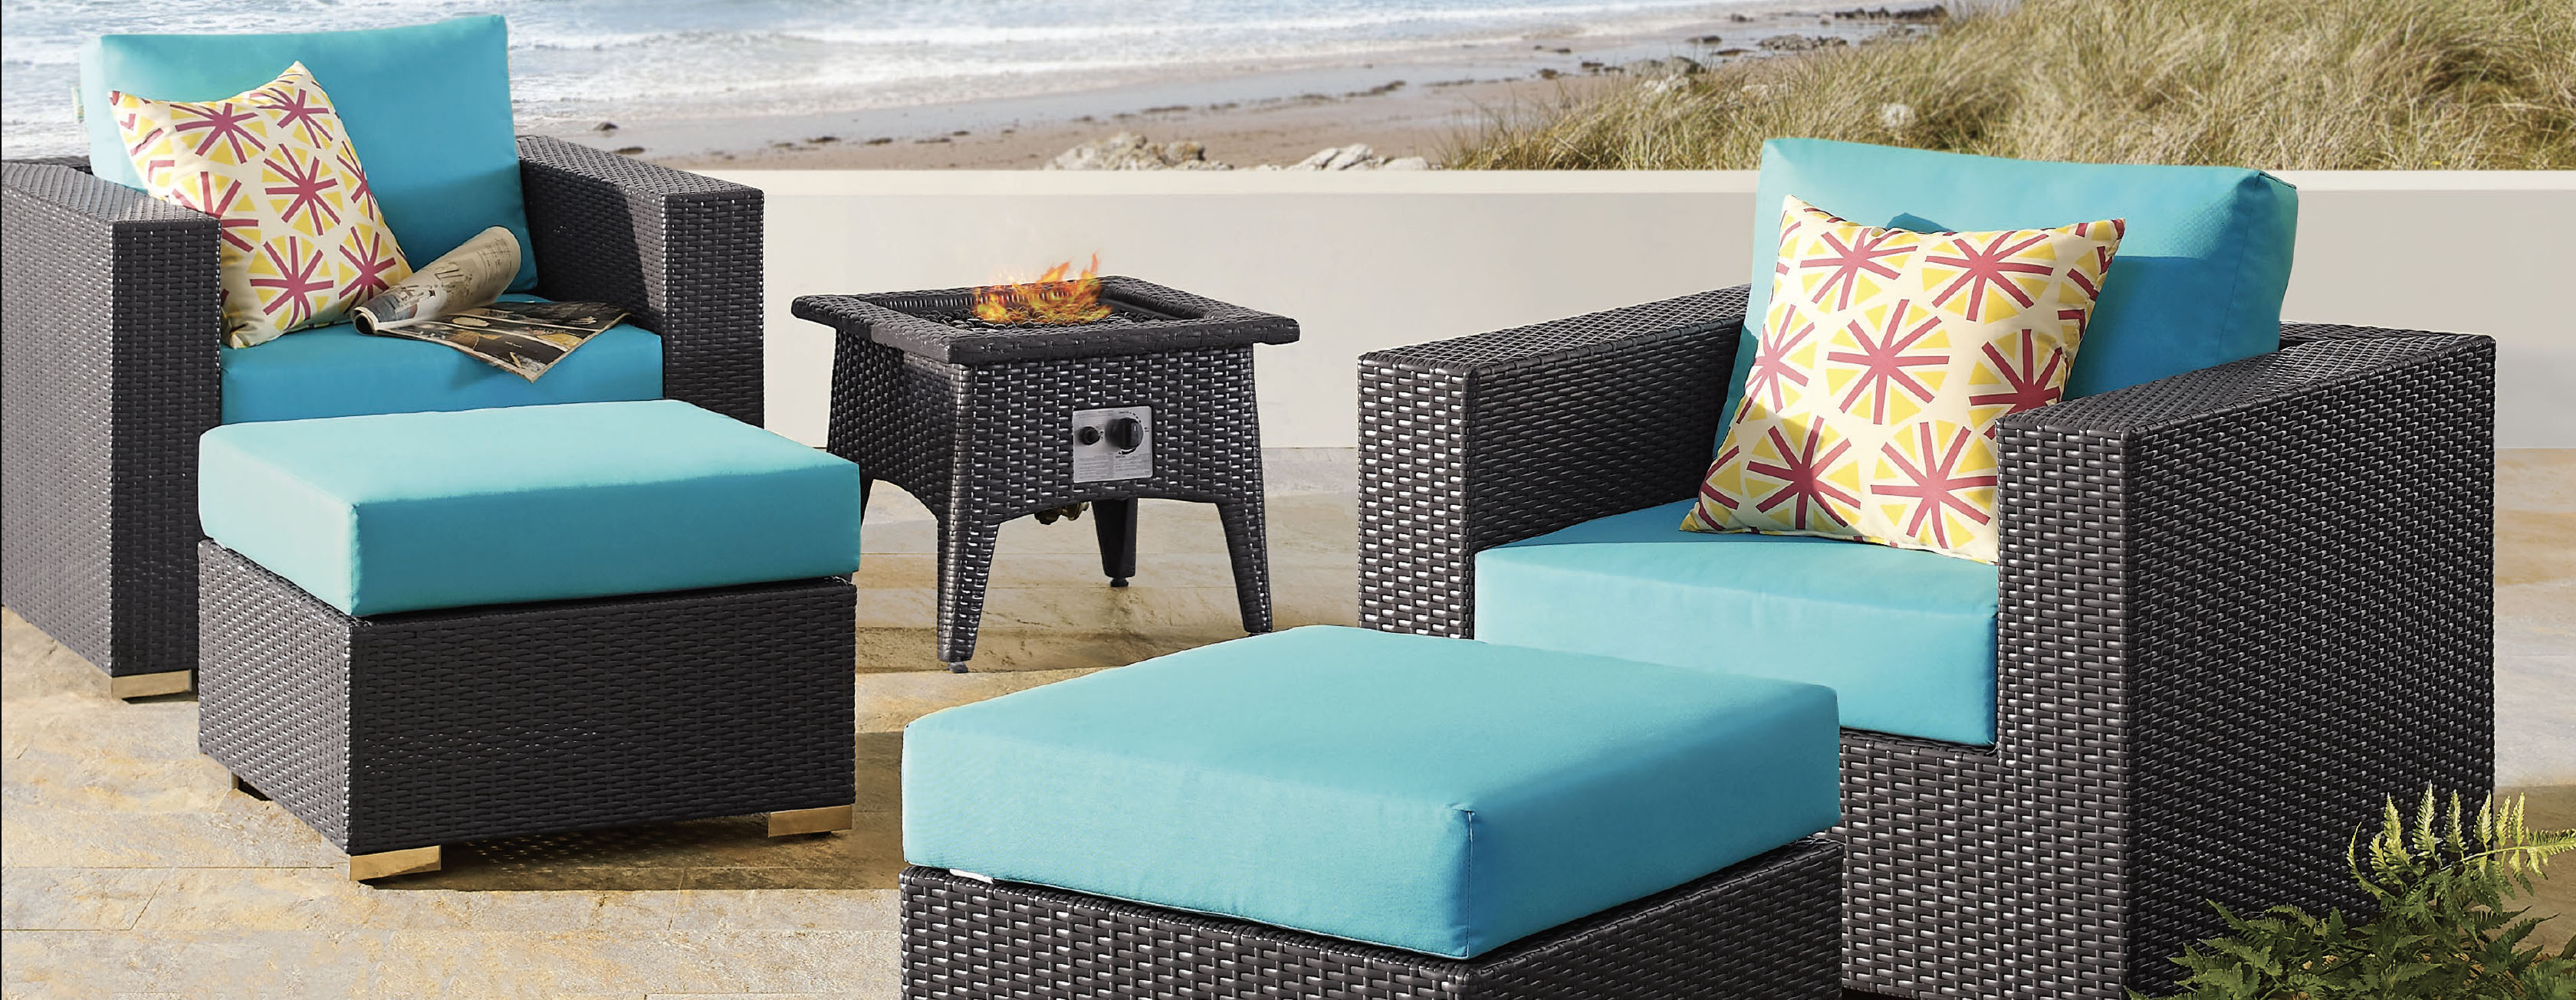 Envisage Chaise Outdoor Patio Wicker Rattan Lounge Chairs Regarding Most Popular Outdoor Daybeds Lounge Chairs & Swings (Gallery 11 of 25)